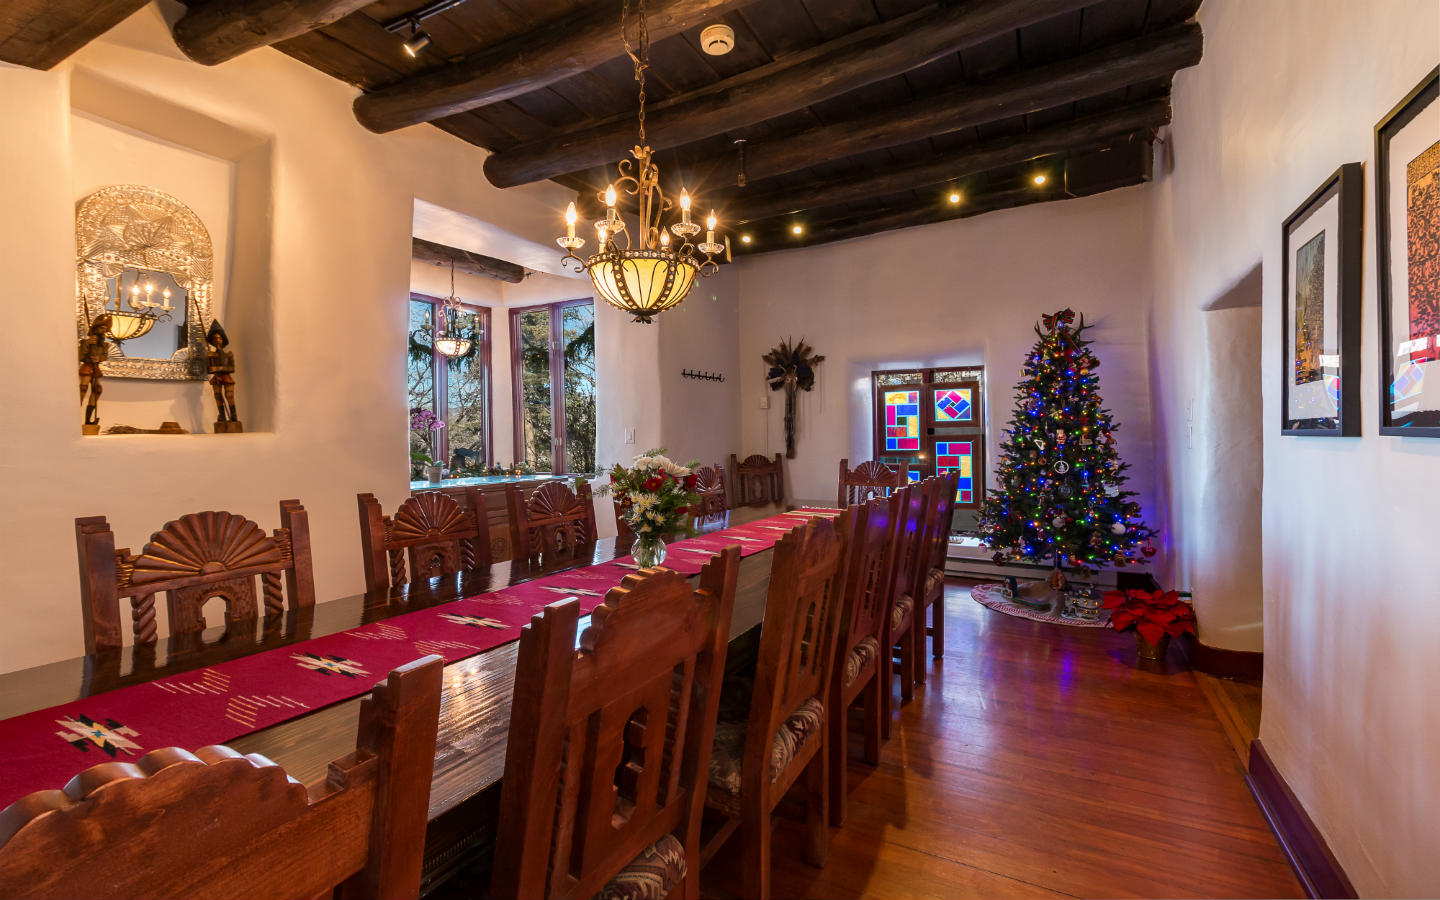 Dining room decorated at christmas time